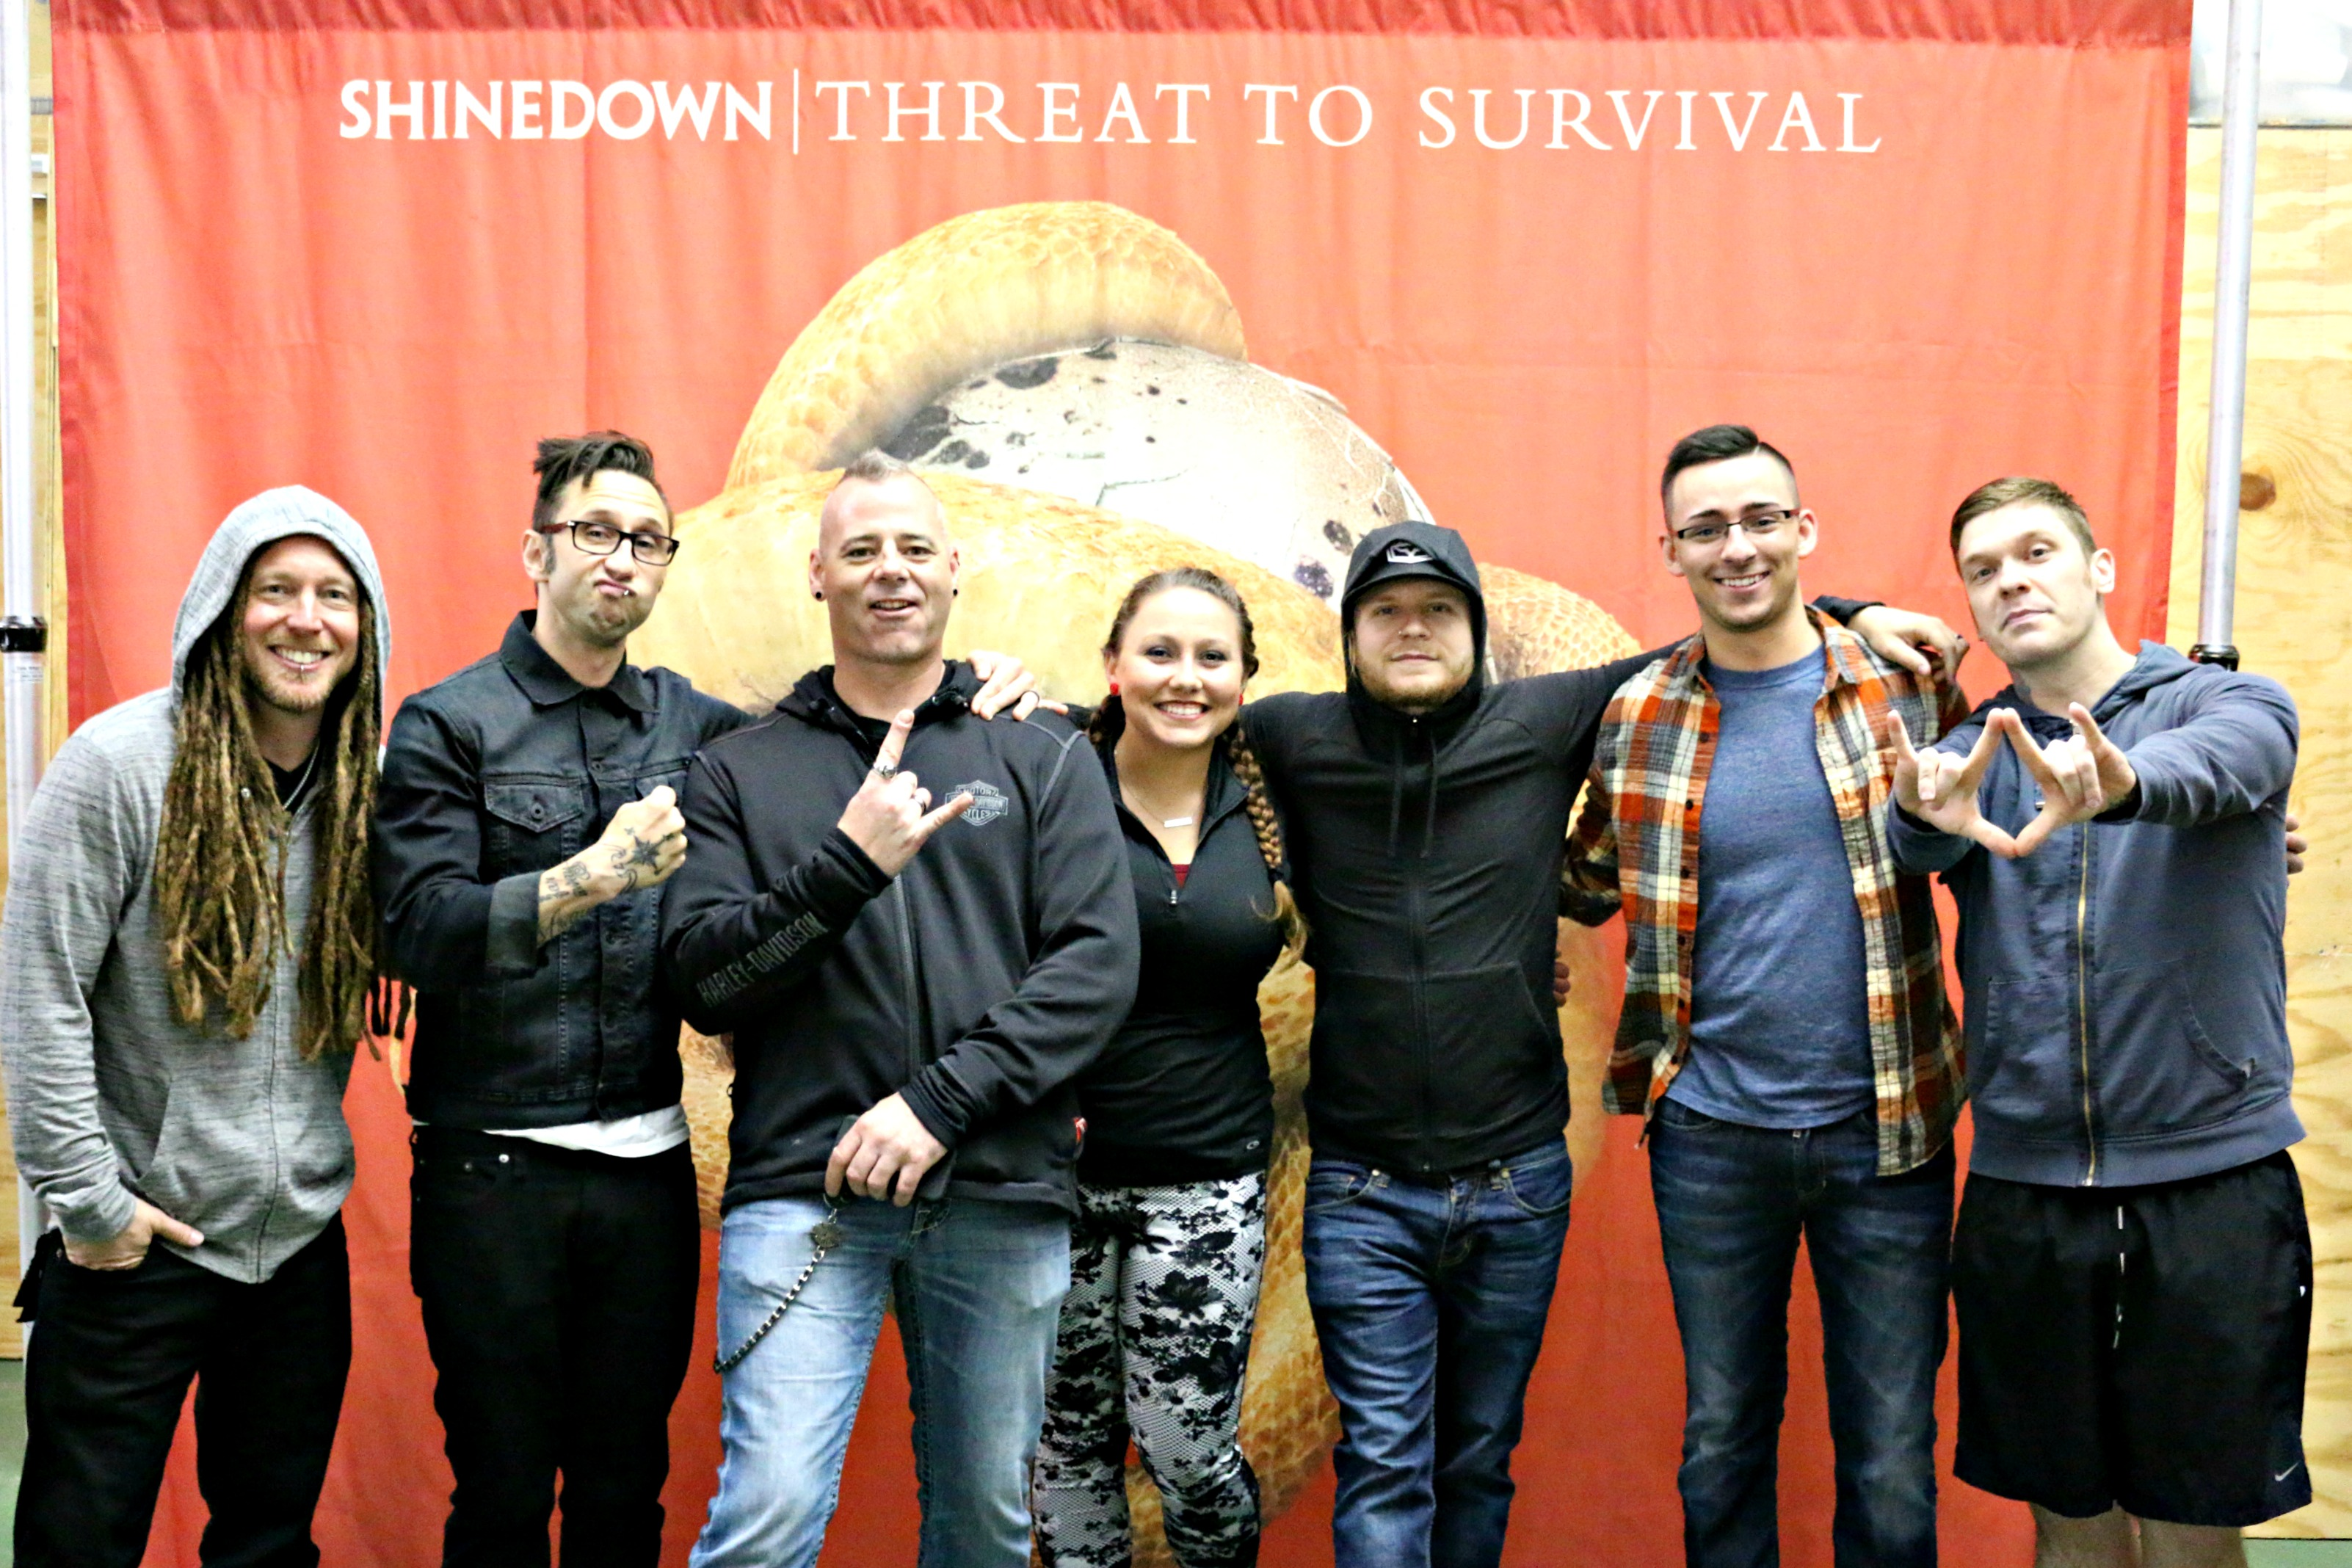 Shinedown meet and greet images greetings card design simple shinedown meet and greet choice image greeting card designs m4hsunfo